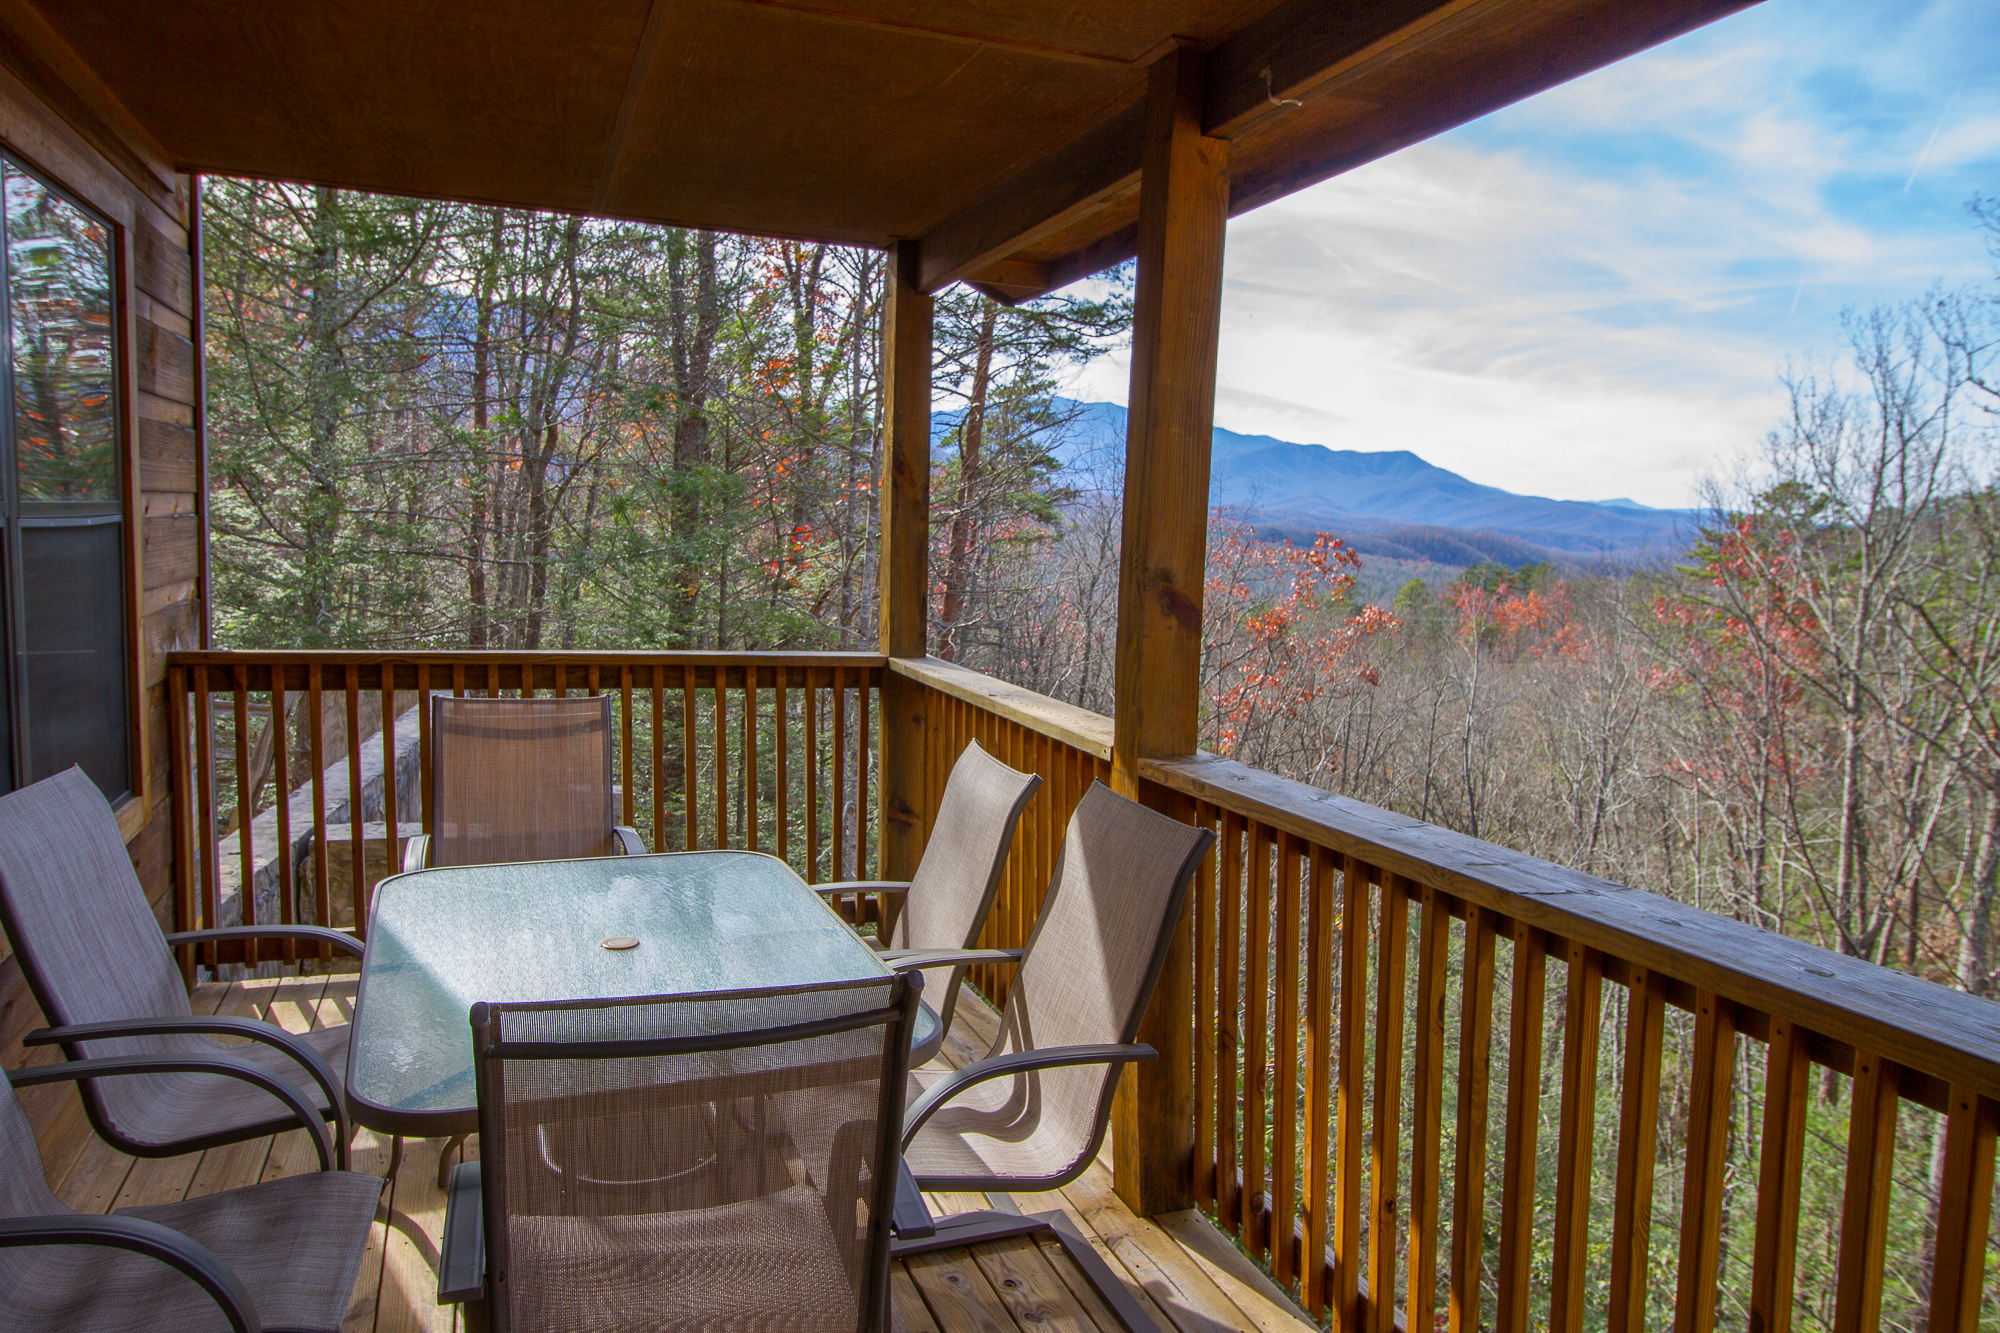 on pigeon images firesidechalets smoky best in the mountains wood gatlinburg rentals forge and cabin pinterest cabins tennessee great